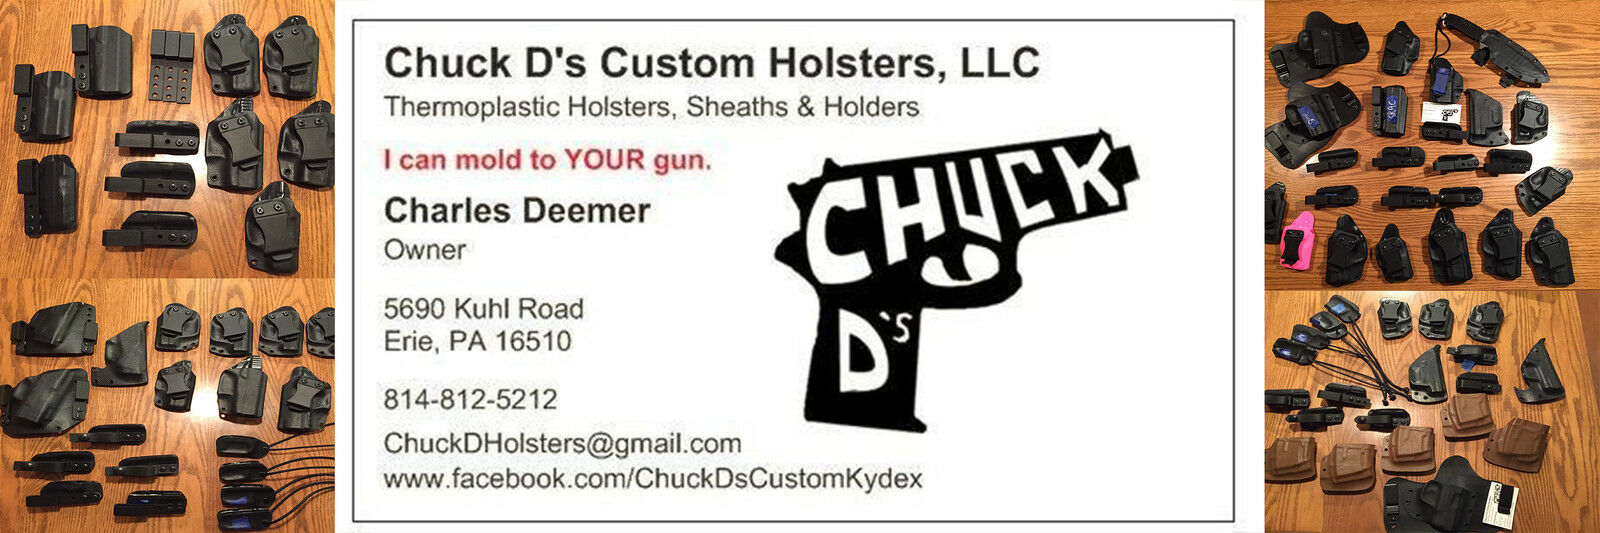 Chuck D's Custom Holsters, LLC